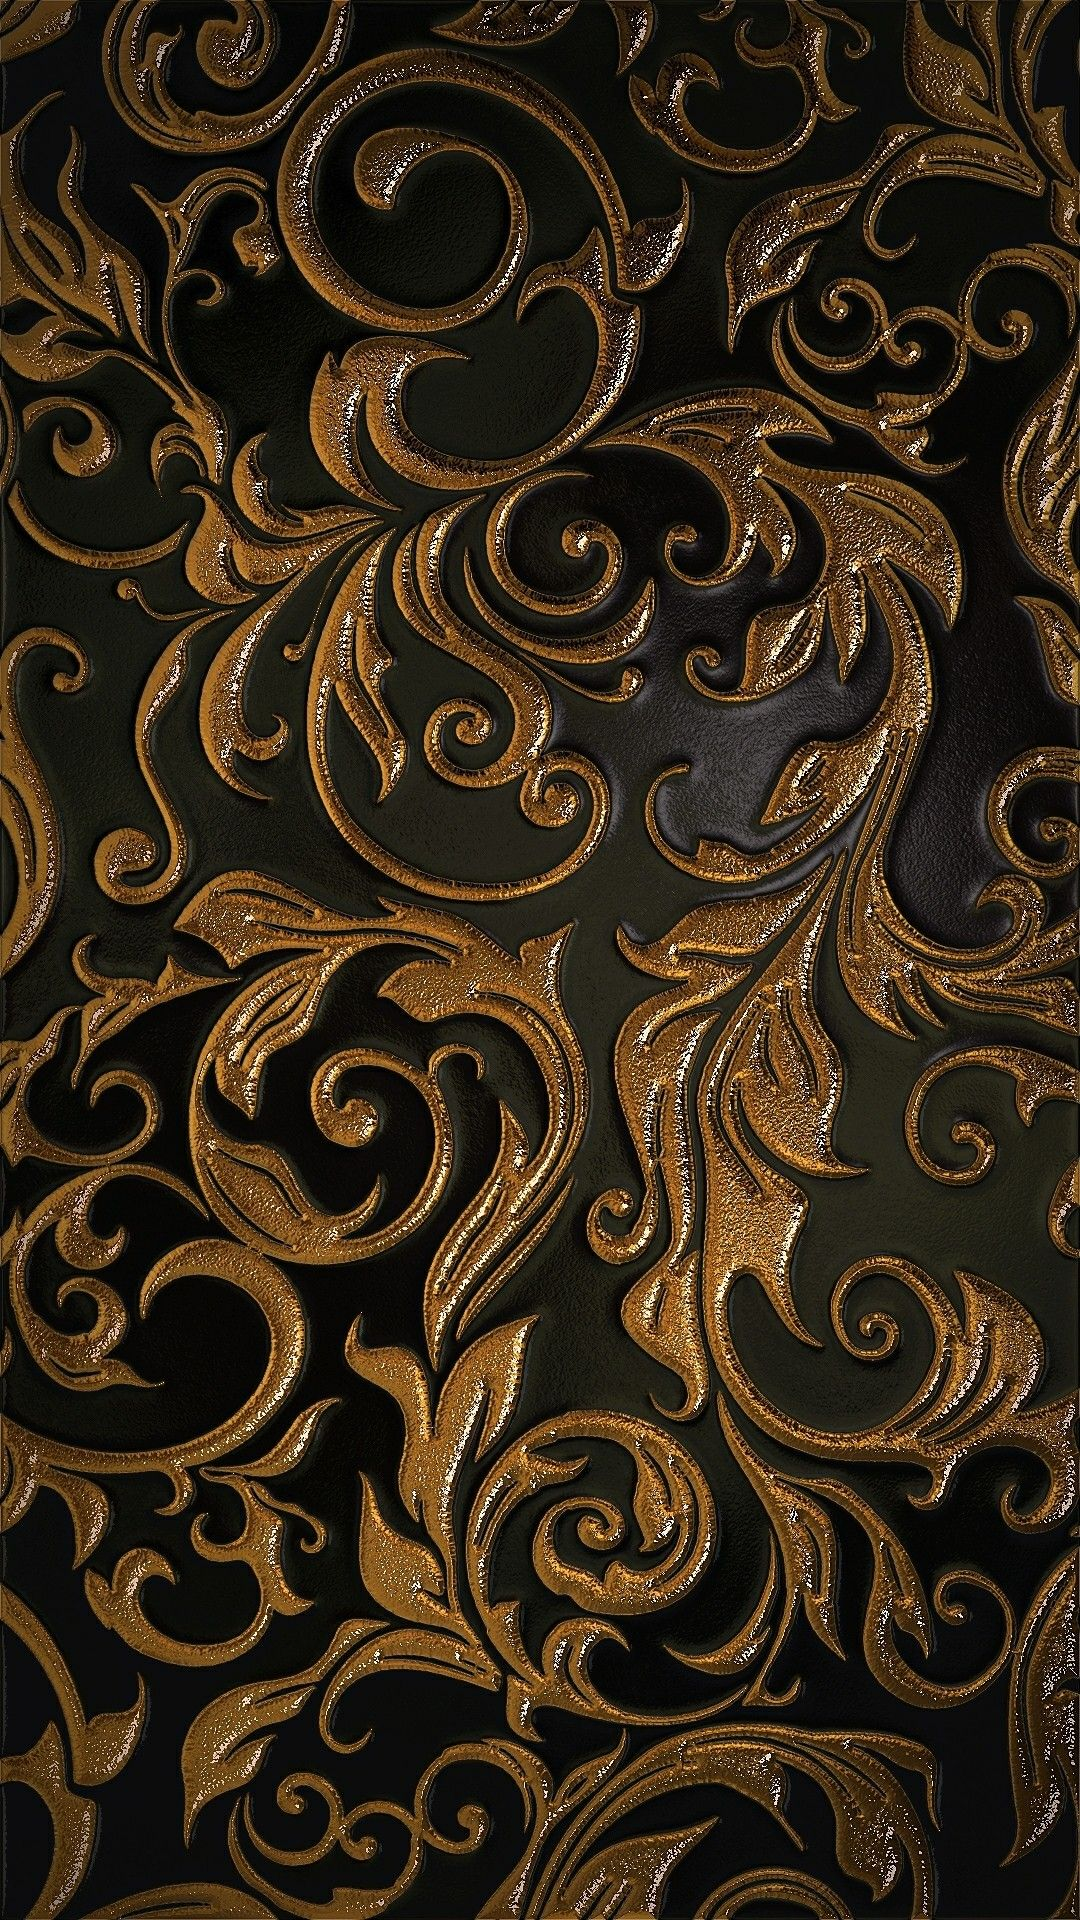 / embossed pattern / Abstract wallpaper, Cellphone wallpaper